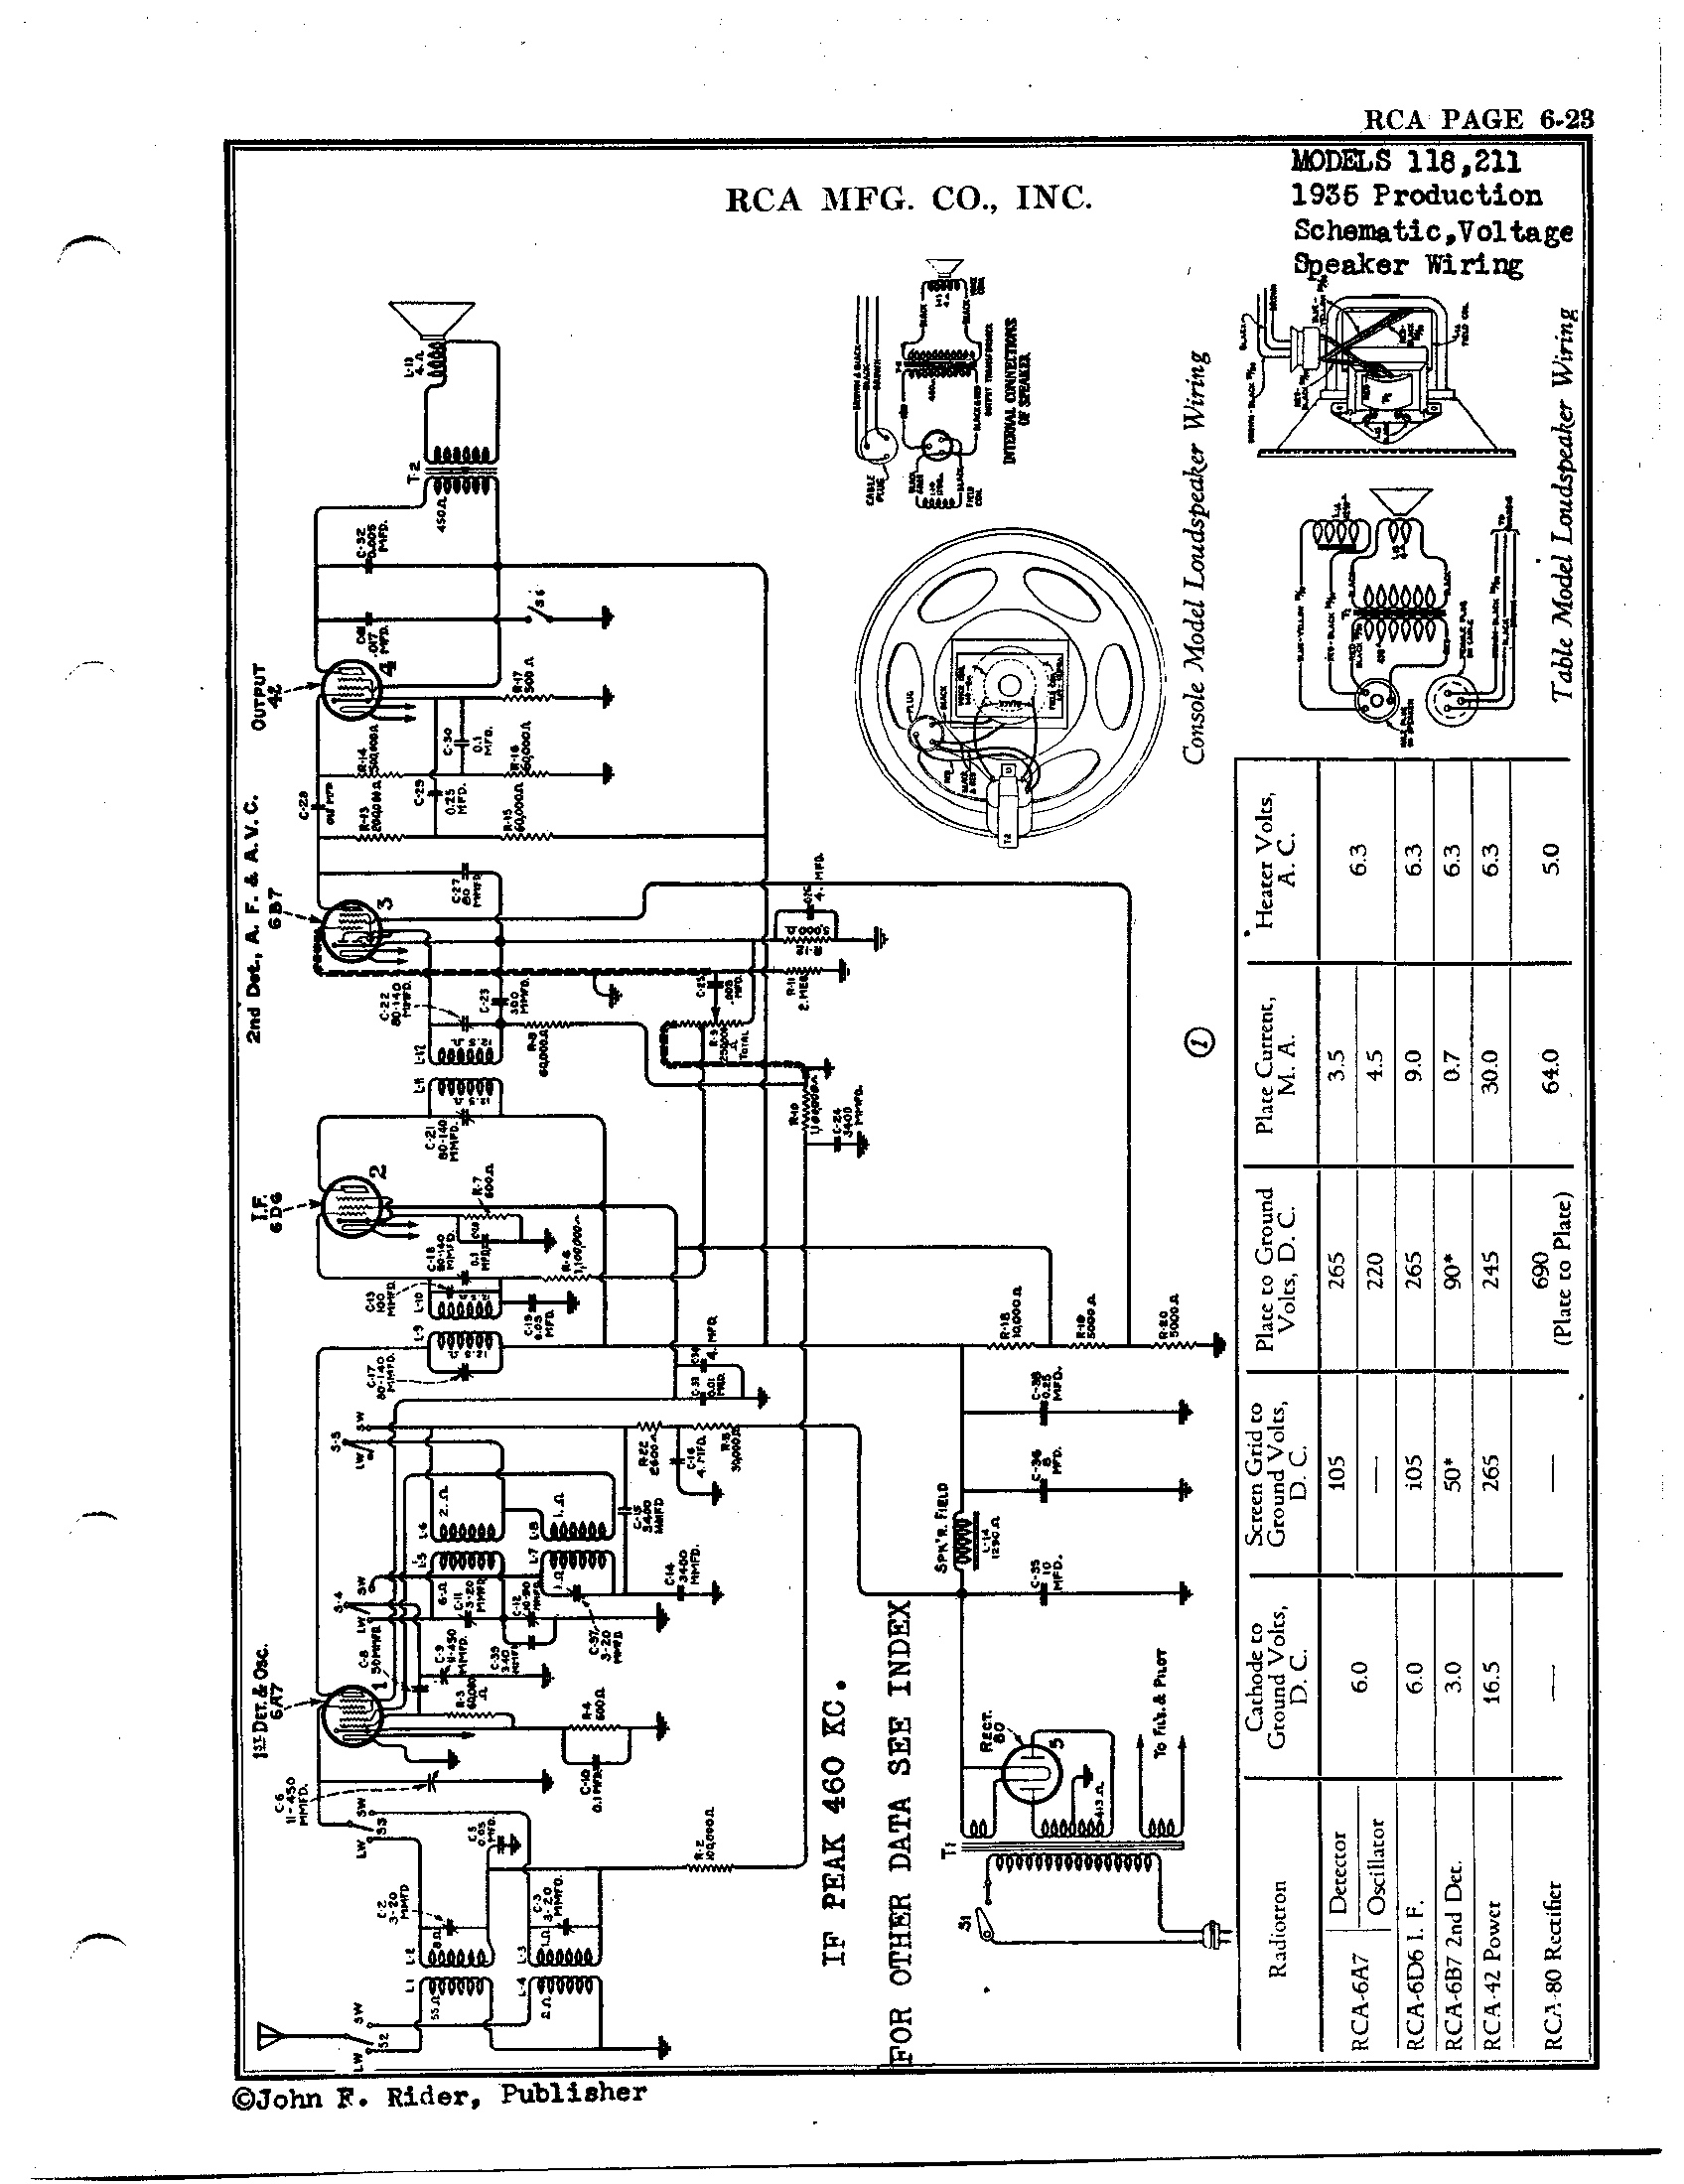 Rca Victor Schematics Related Keywords & Suggestions - Rca